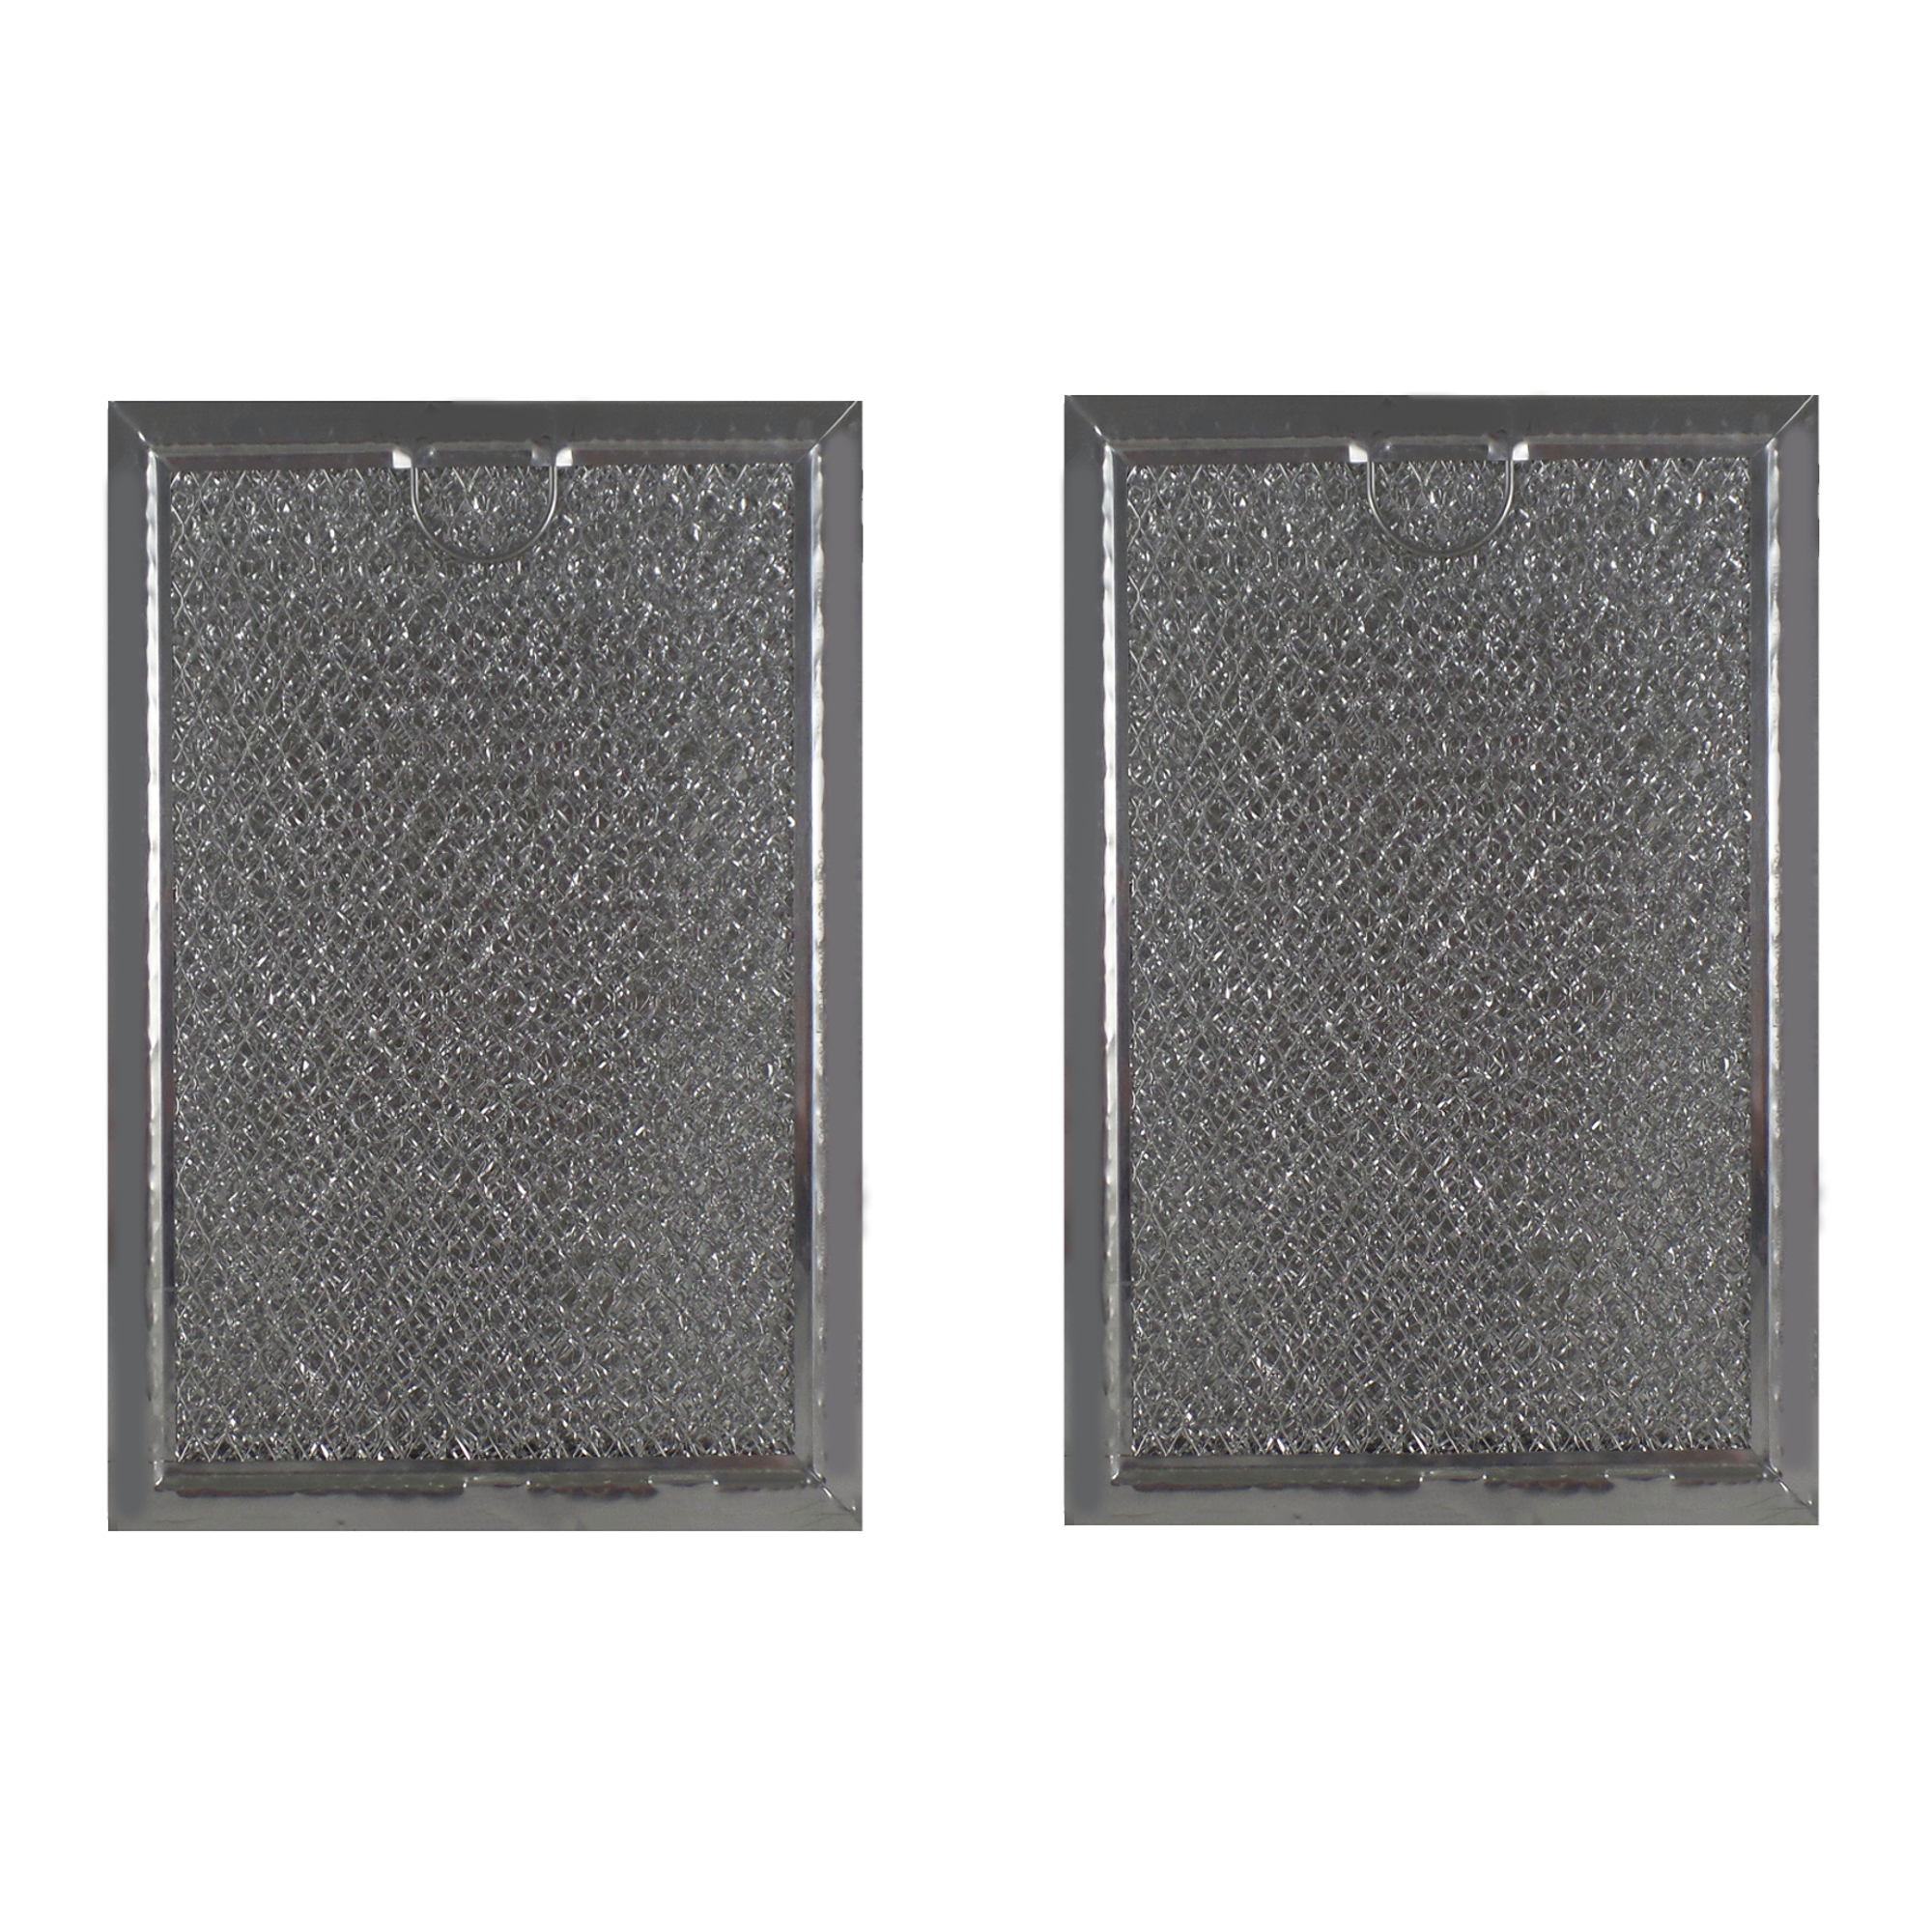 2 Frigidaire Microwave Oven Grease Filters 5304517871